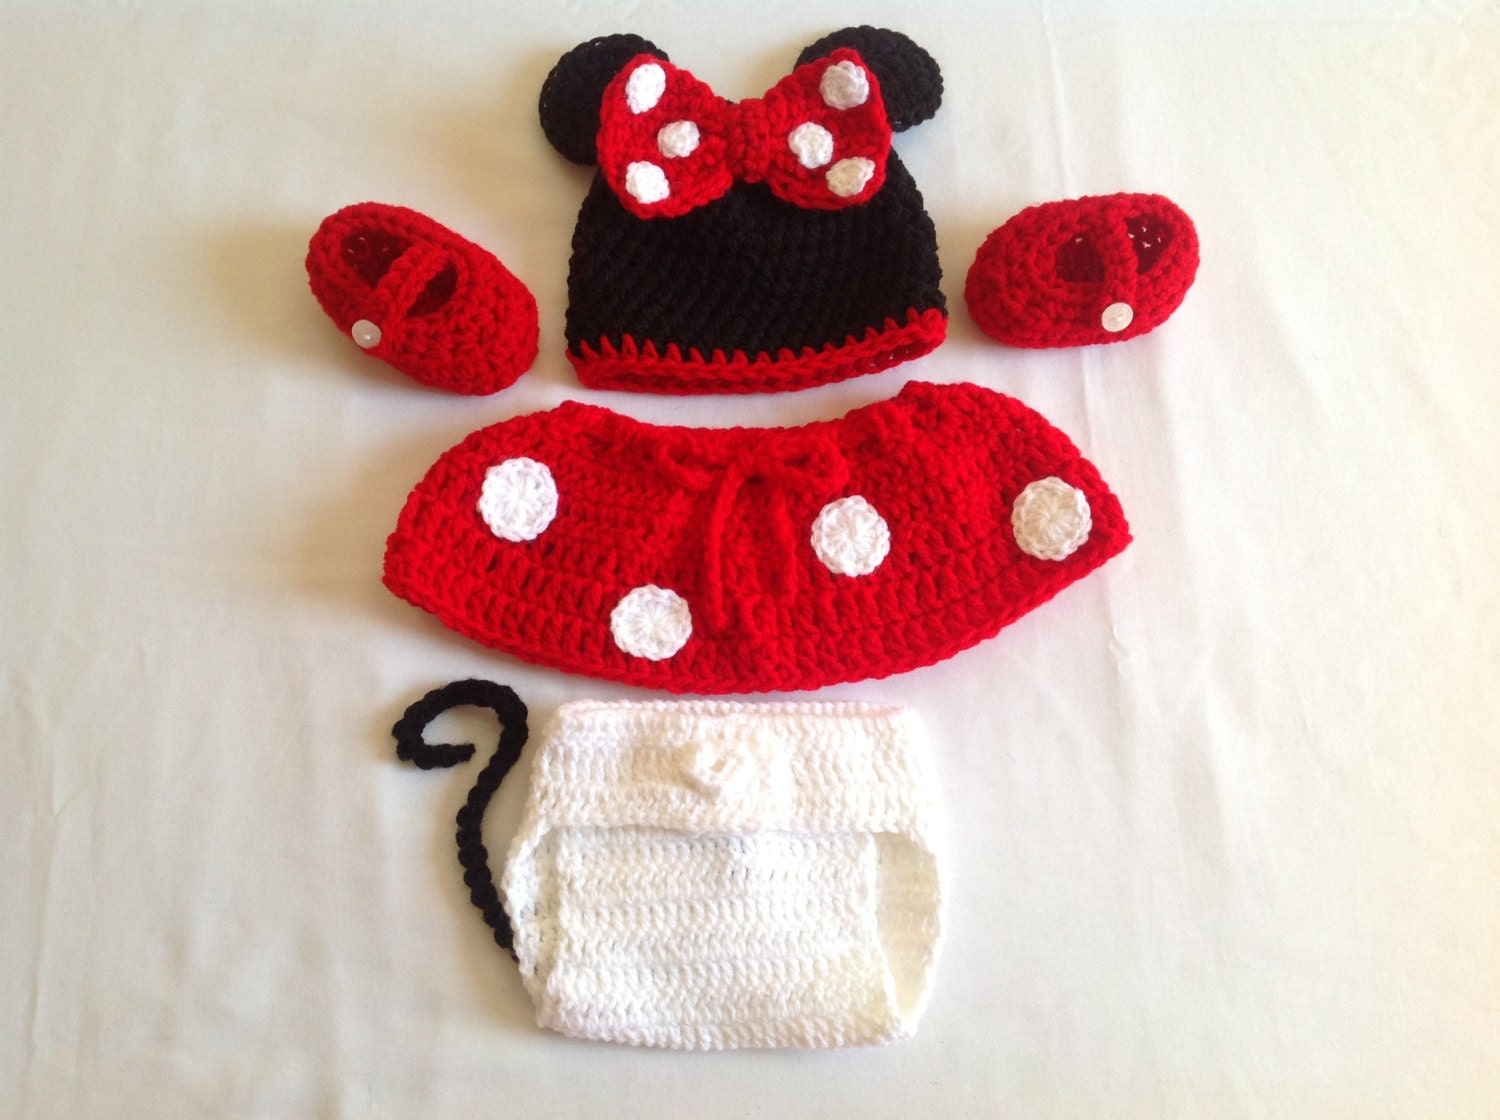 Free Crochet Pattern Minnie Mouse Diaper Cover : Baby Crochet Minnie Mouse Hat Diaper Cover Shoes and Skirt